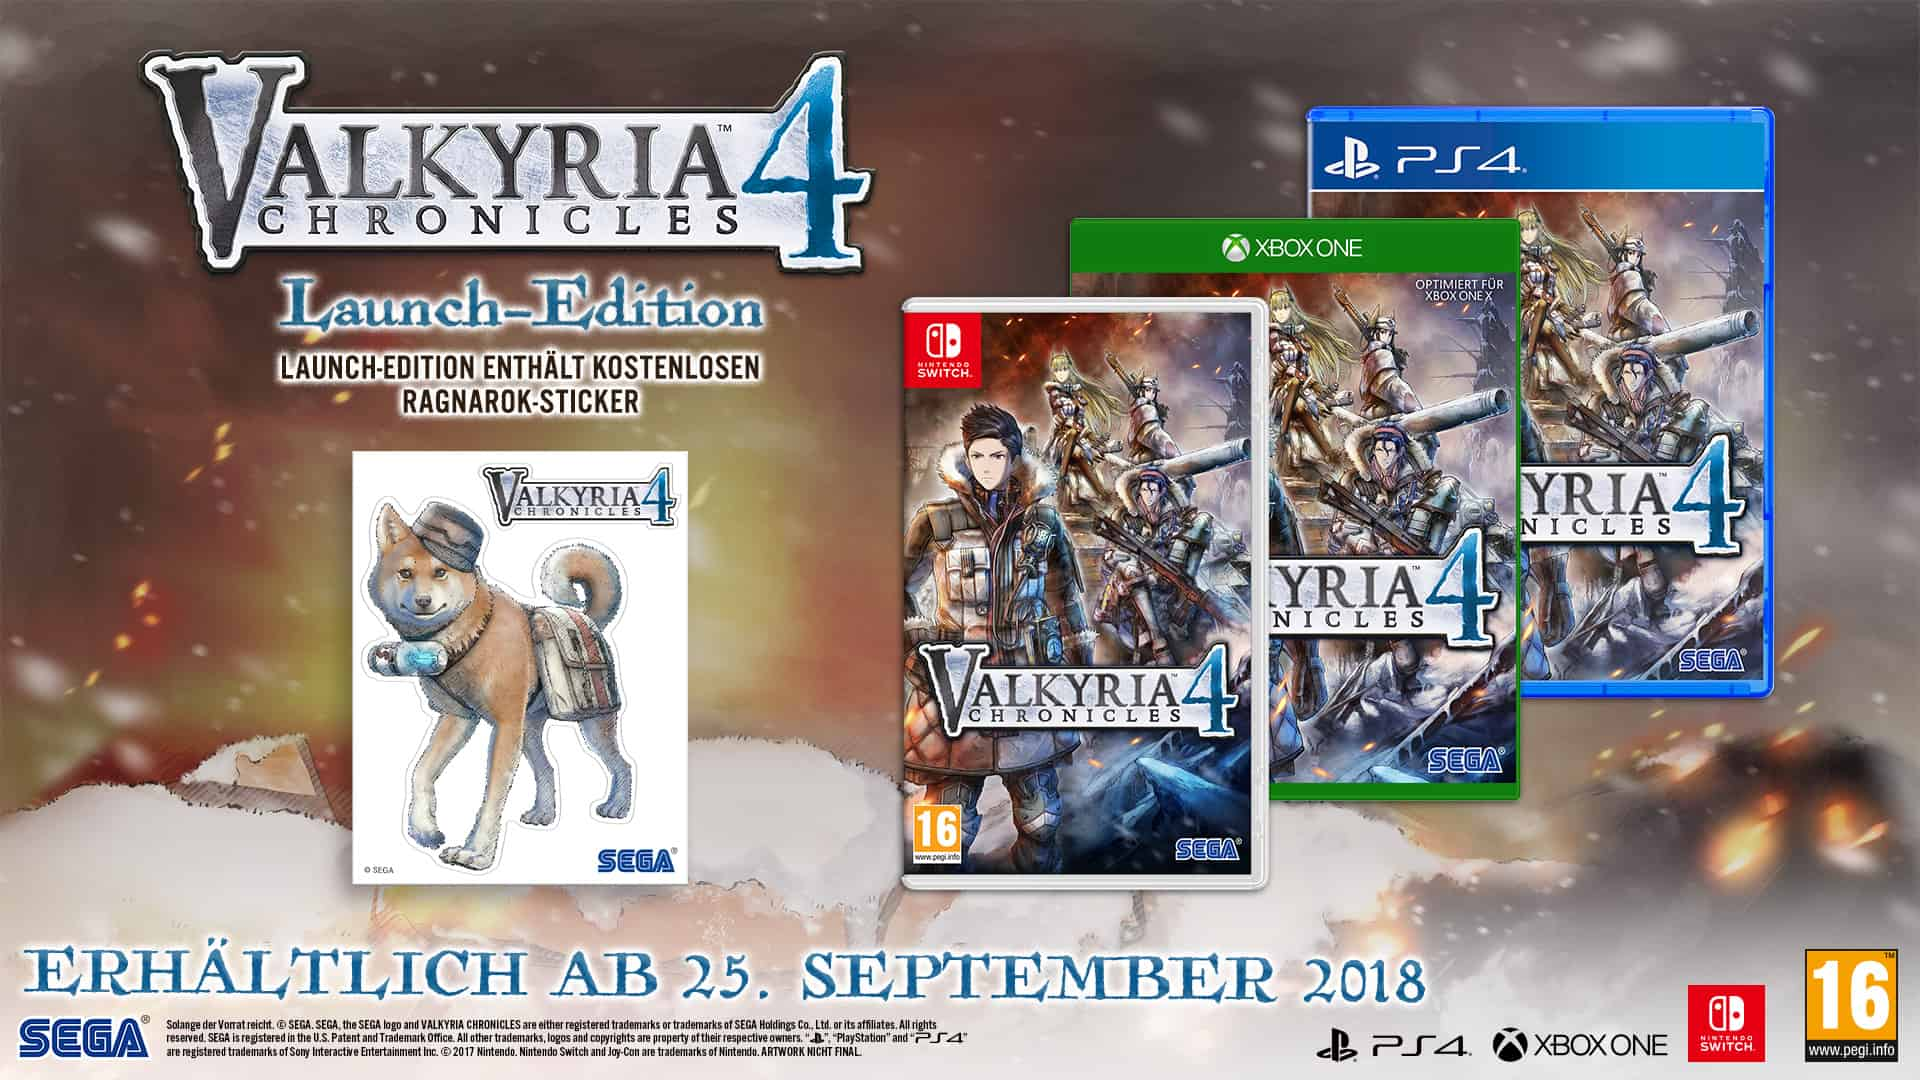 Sega - Valkyria 4 - Chronicles - Launch-Edition - Nintendo Switch - Xbox One - PlayStation 4